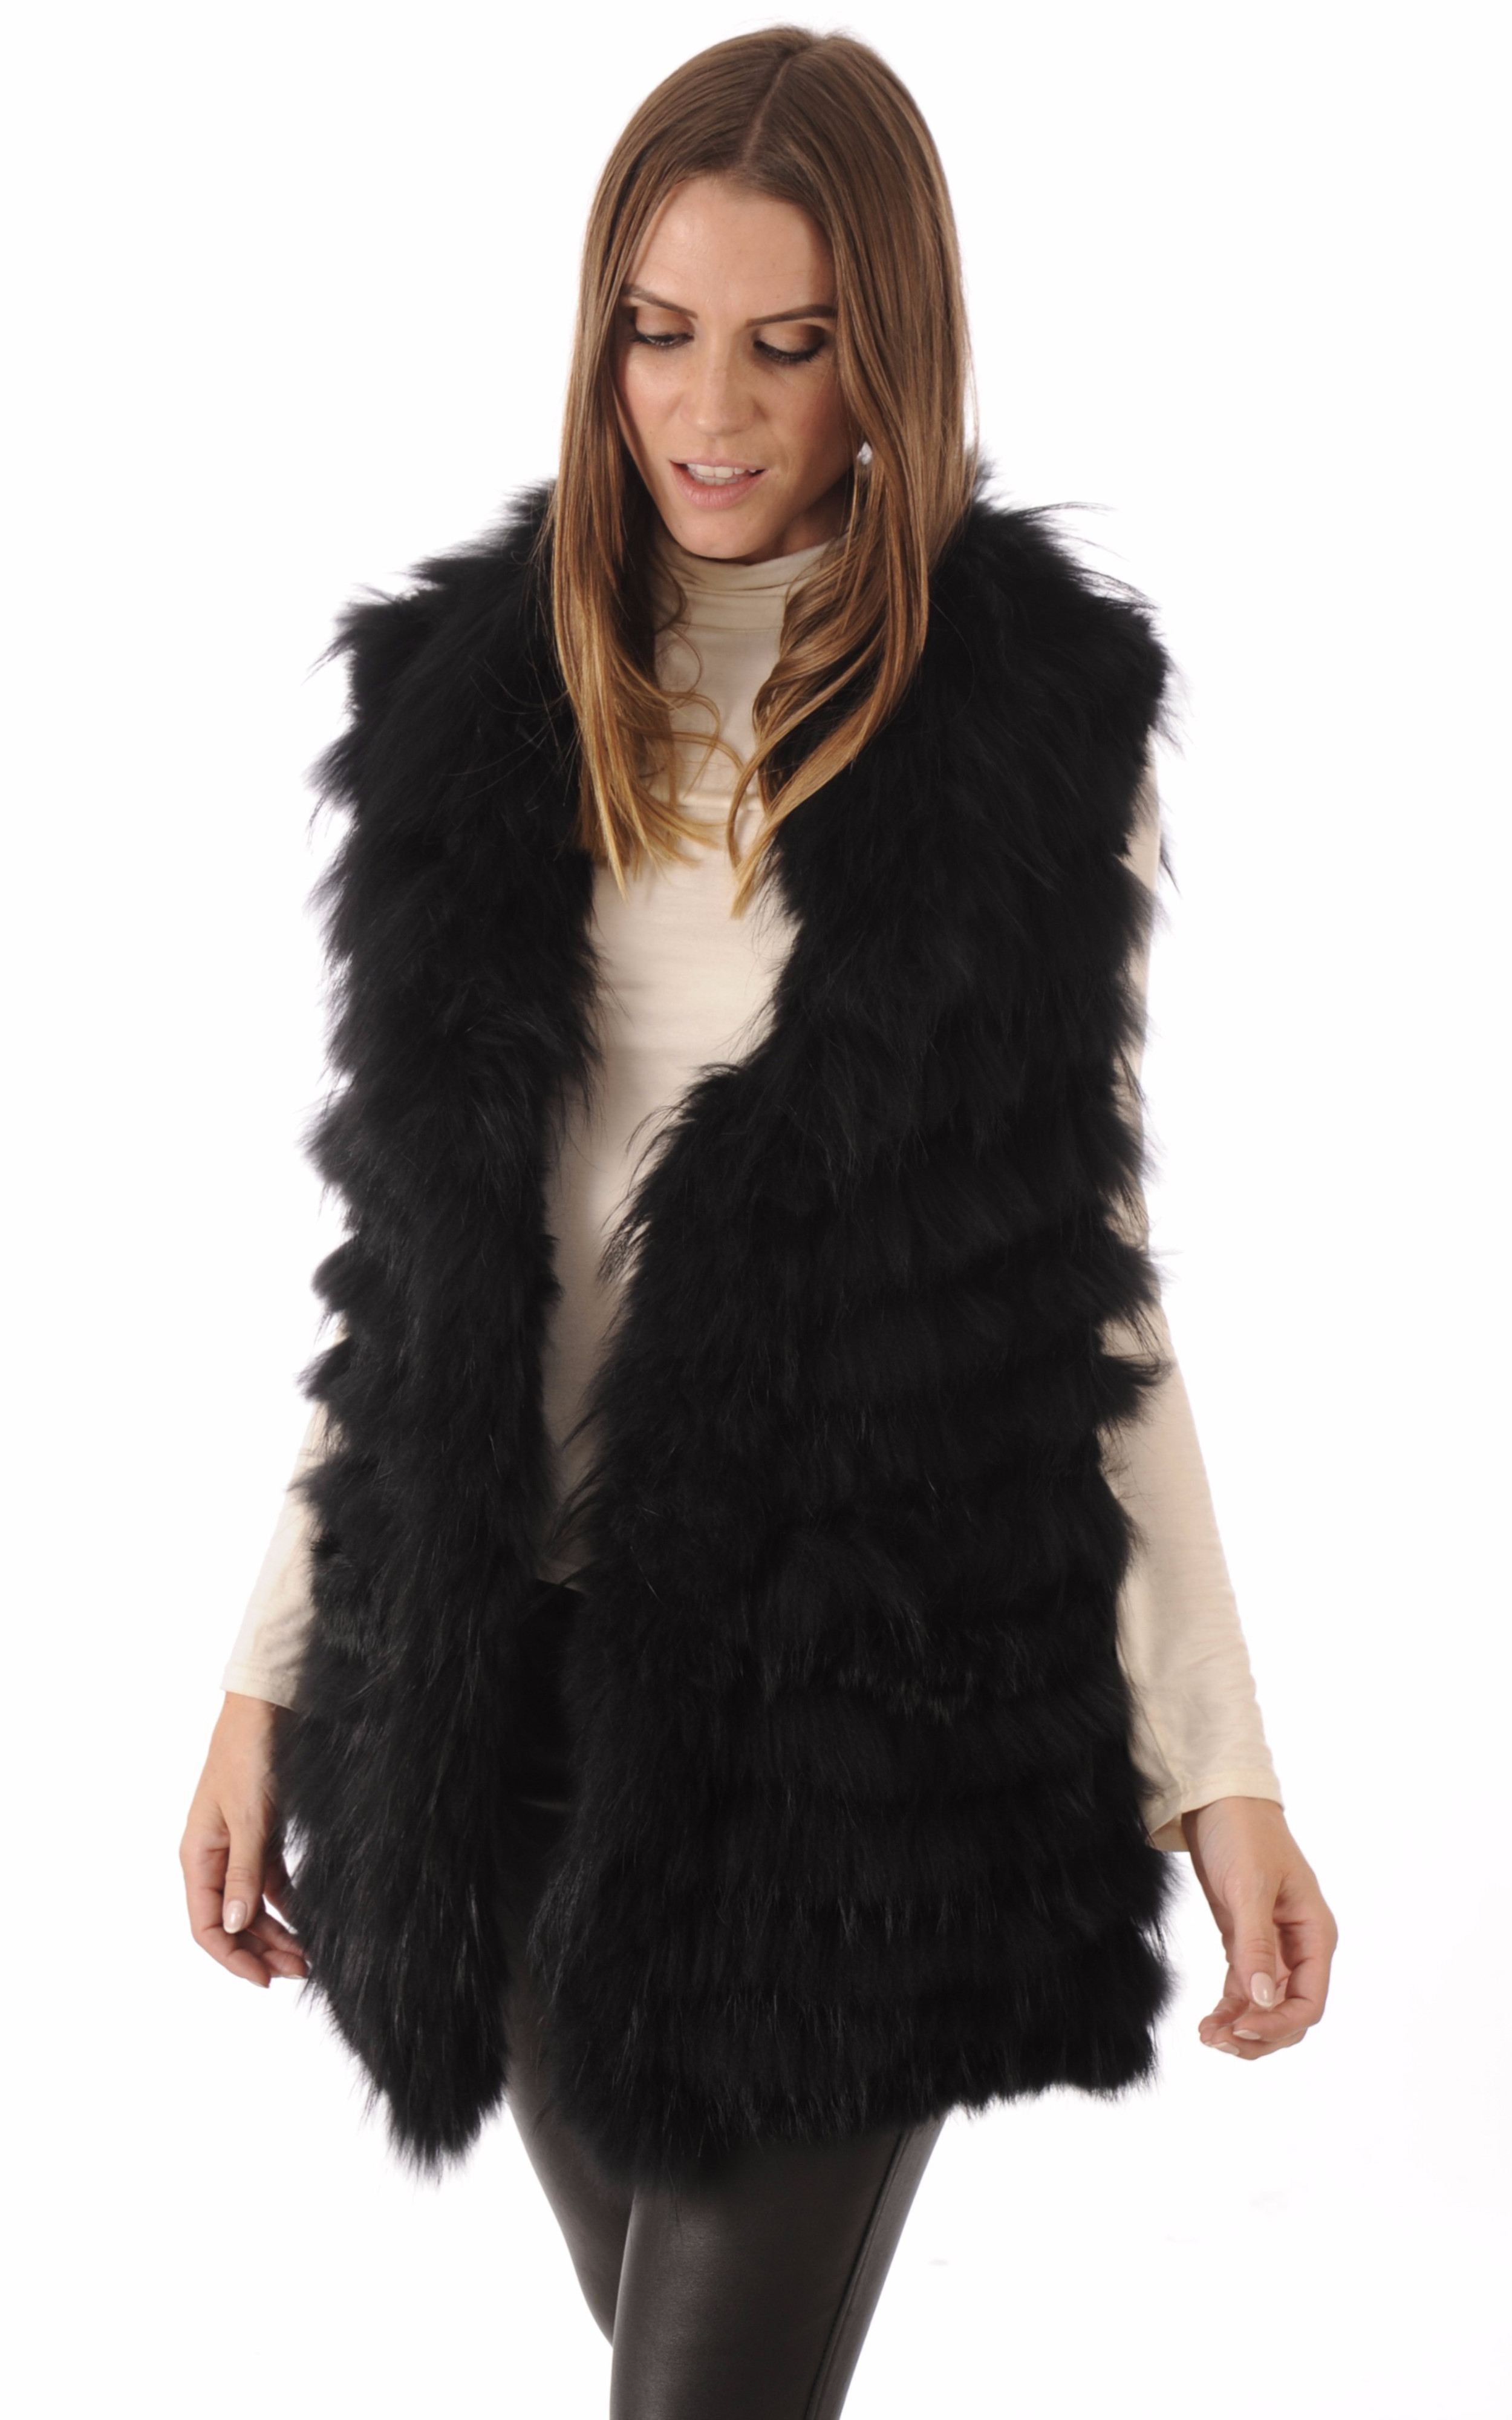 gilet fourrure lapin et raccoon noir oakwood la canadienne gilet poncho cape fourrure noir. Black Bedroom Furniture Sets. Home Design Ideas